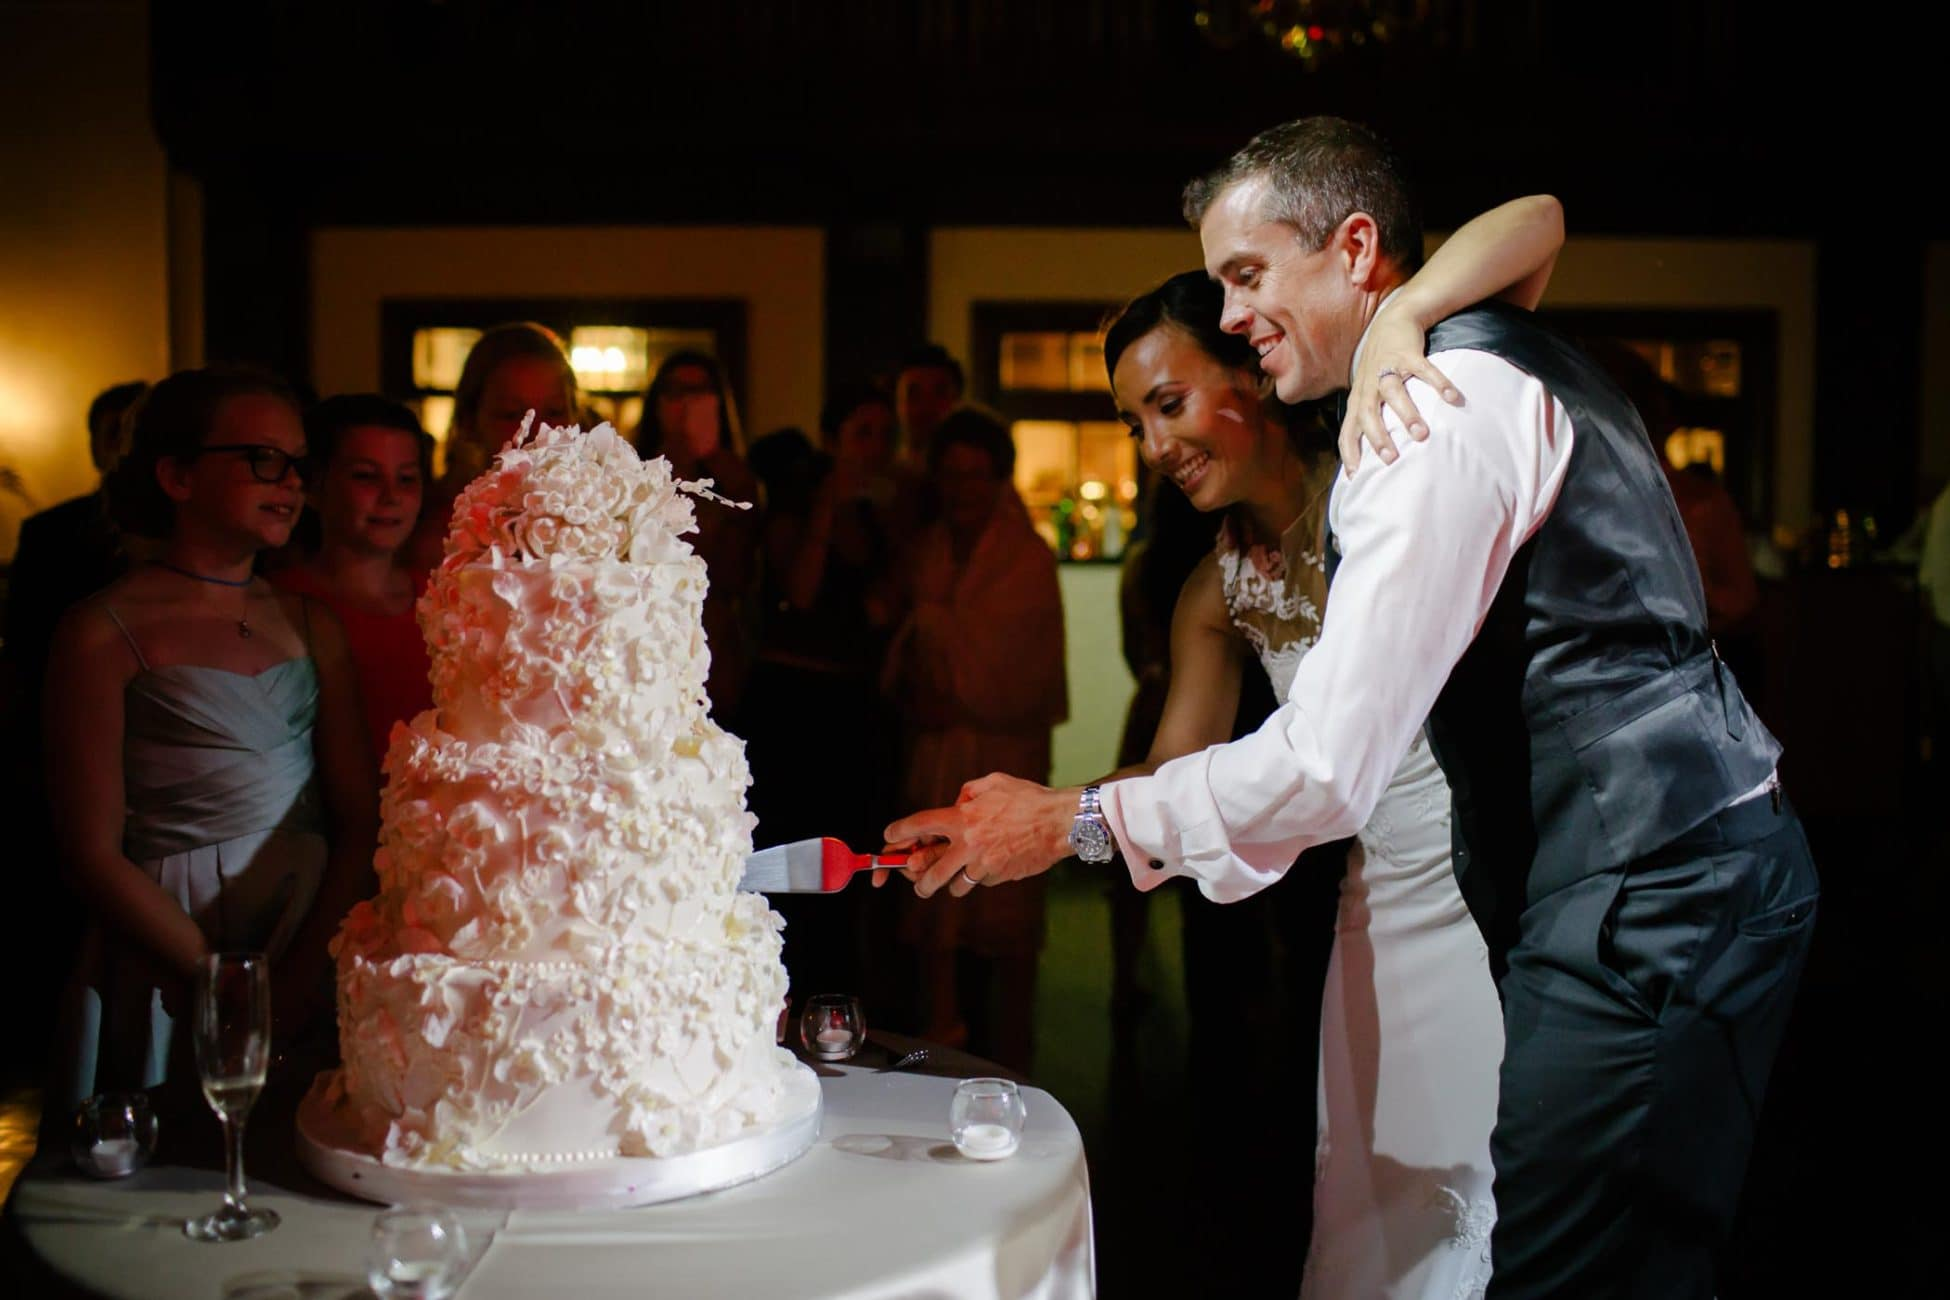 Bride and groom cutting wedding cake. Bride has hand over groom's shoulder and they are standing in centre of bright light with guests in darkness behind them. Reception area of The Boulevard Club. By Toronto Wedding Photographer Pavel Kounine.